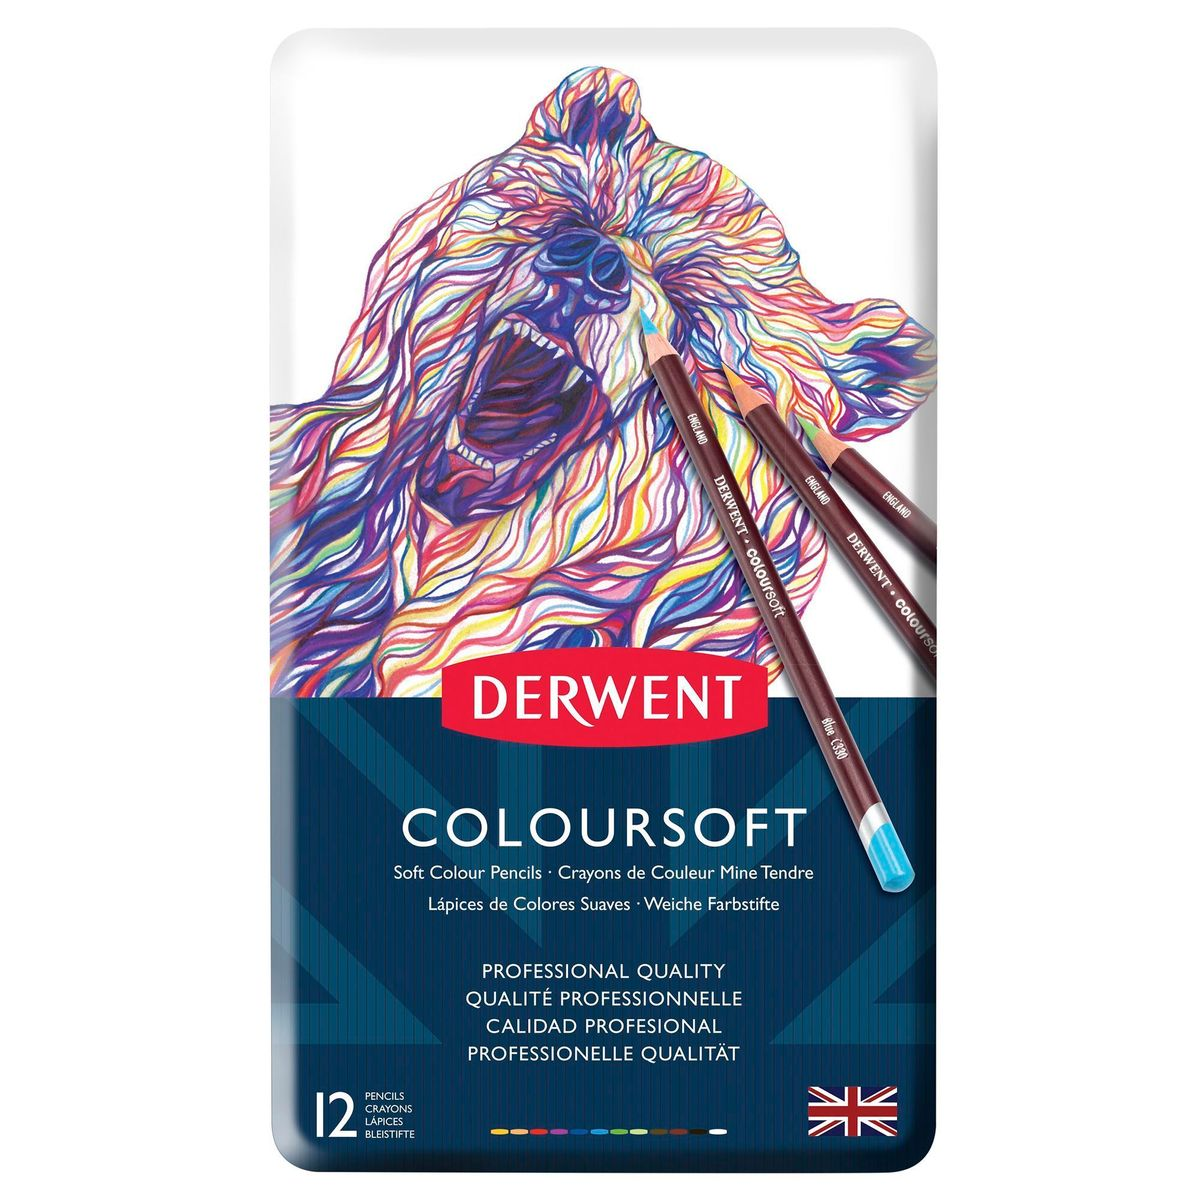 Kit Lápis Derwent Coloursoft C/ 12 Cores